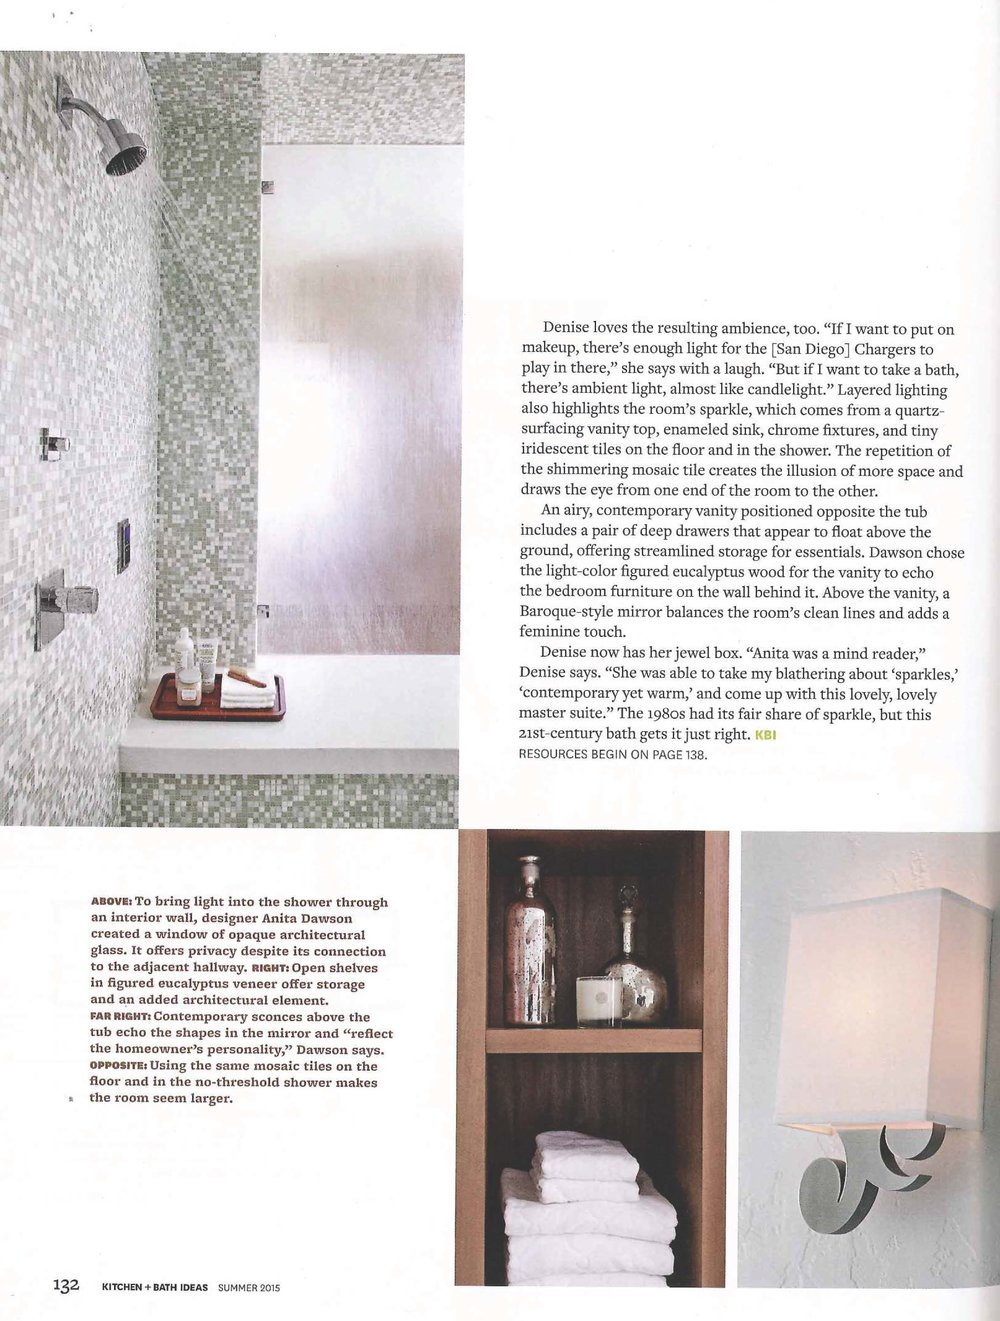 11 Better Homes and Gardens Summer 2015_Page_6.jpg